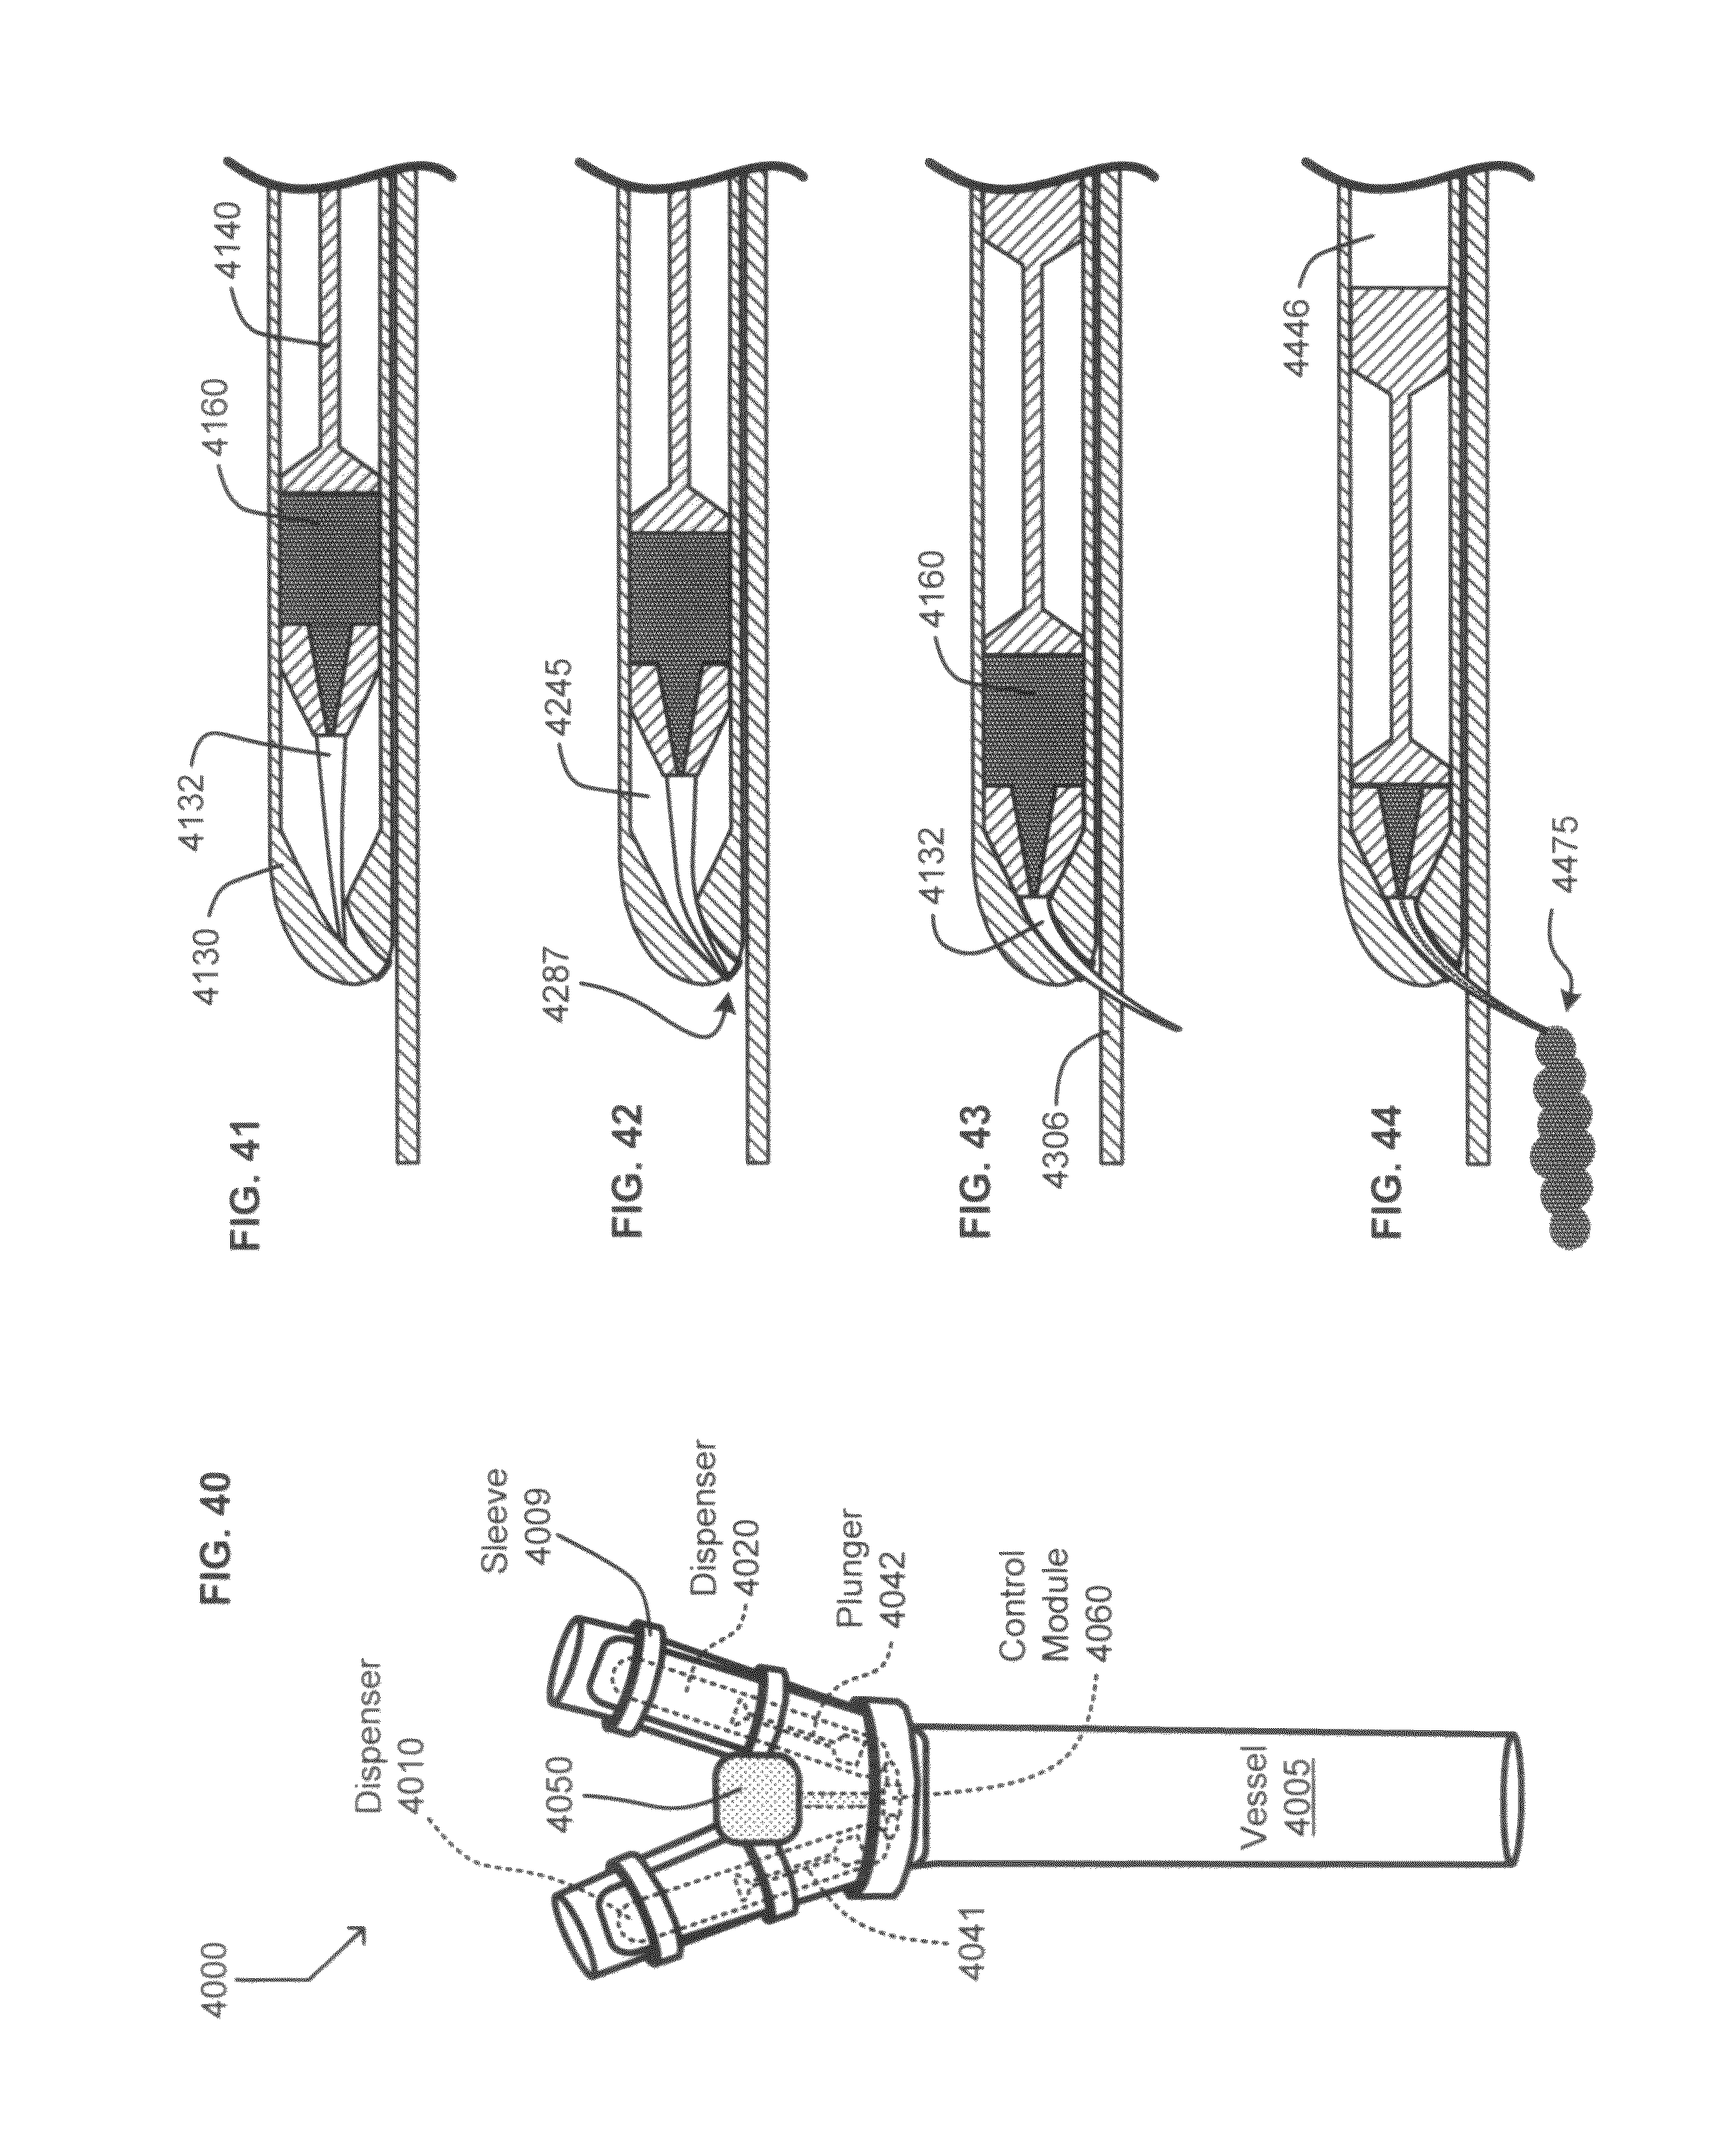 Patent Us 8870813 B2 Lights Likewise Color Organ Circuit Schematic As Well Electronic Images